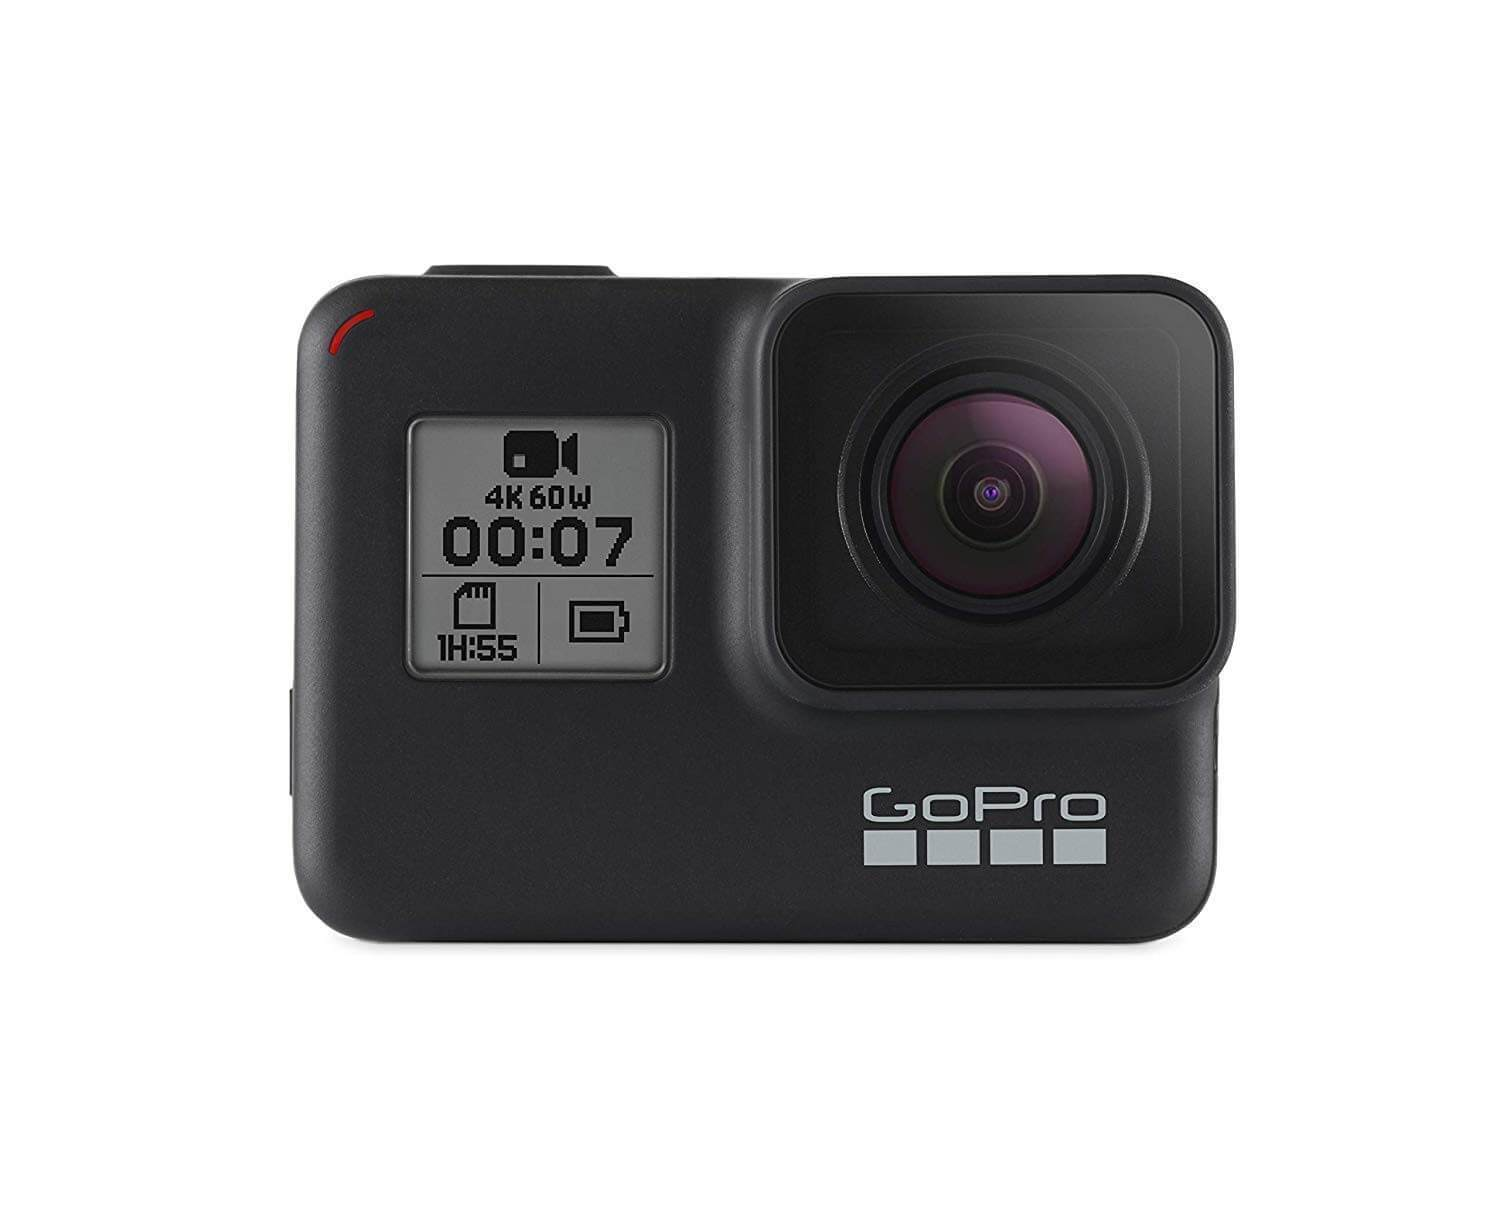 GoPro HERO7 Black - Waterproof Digital Action Camera with Touch Screen 4K HD Video 12MP Photos Live Streaming Stabilization